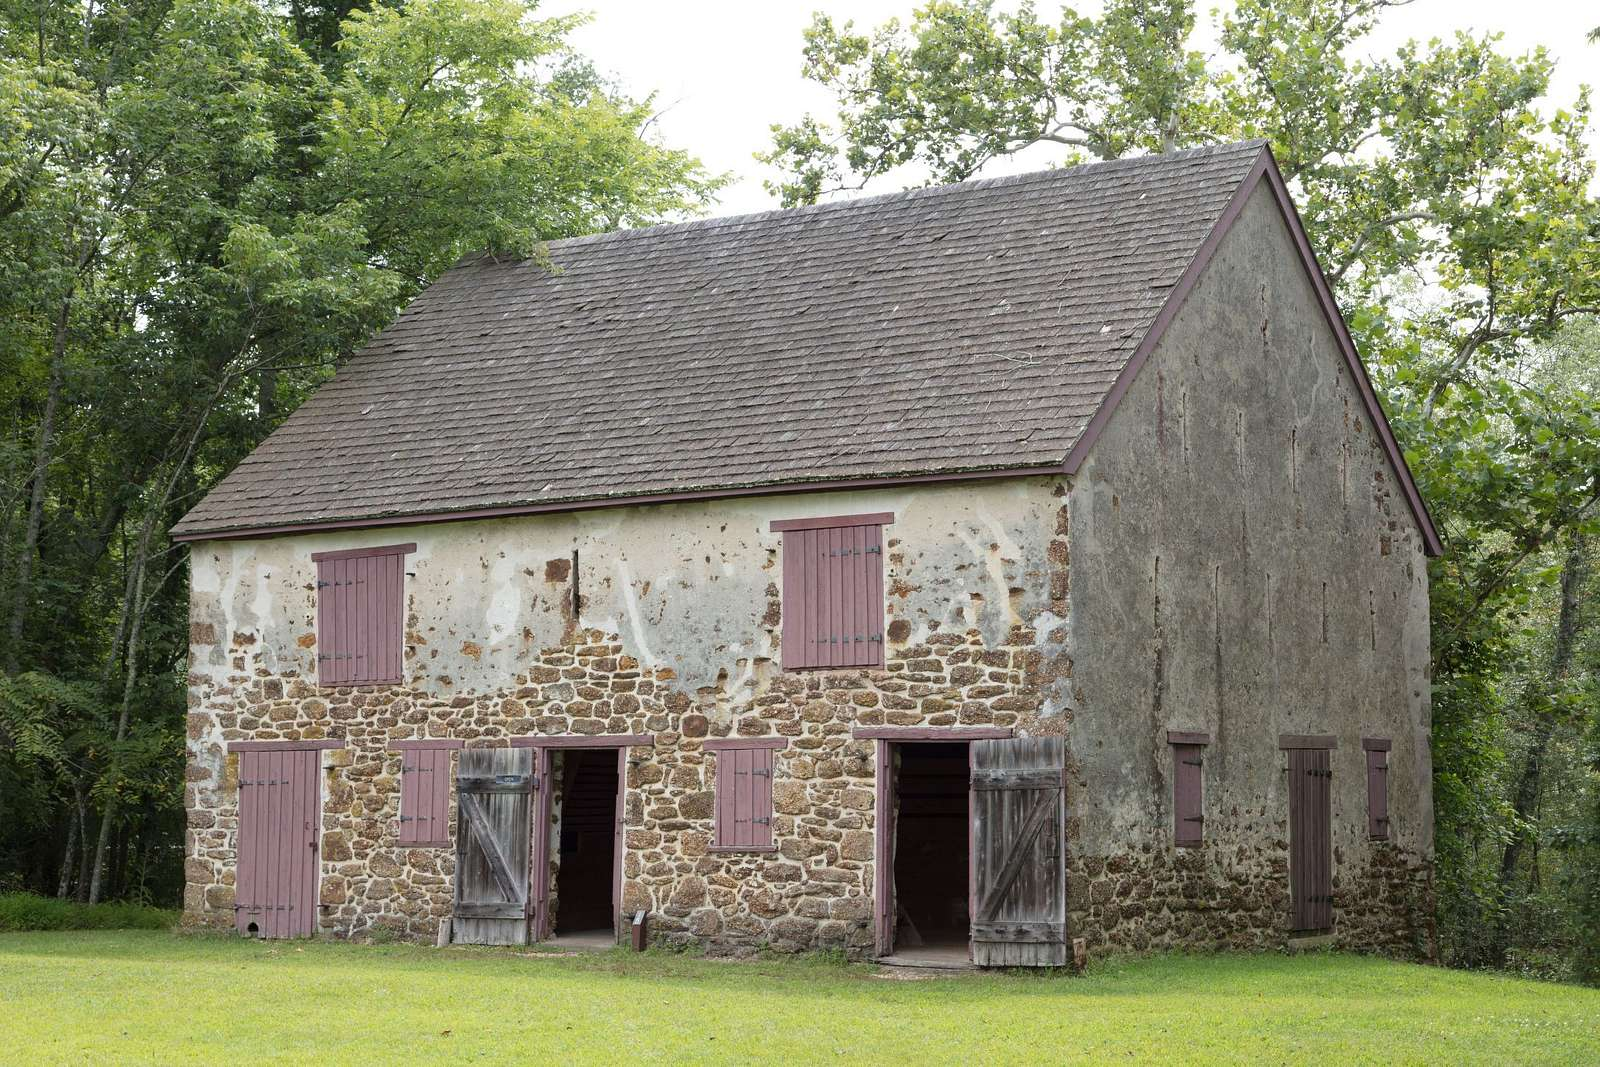 Stone barn in the historic village of Batsto in the Pine Barrens of New Jersey